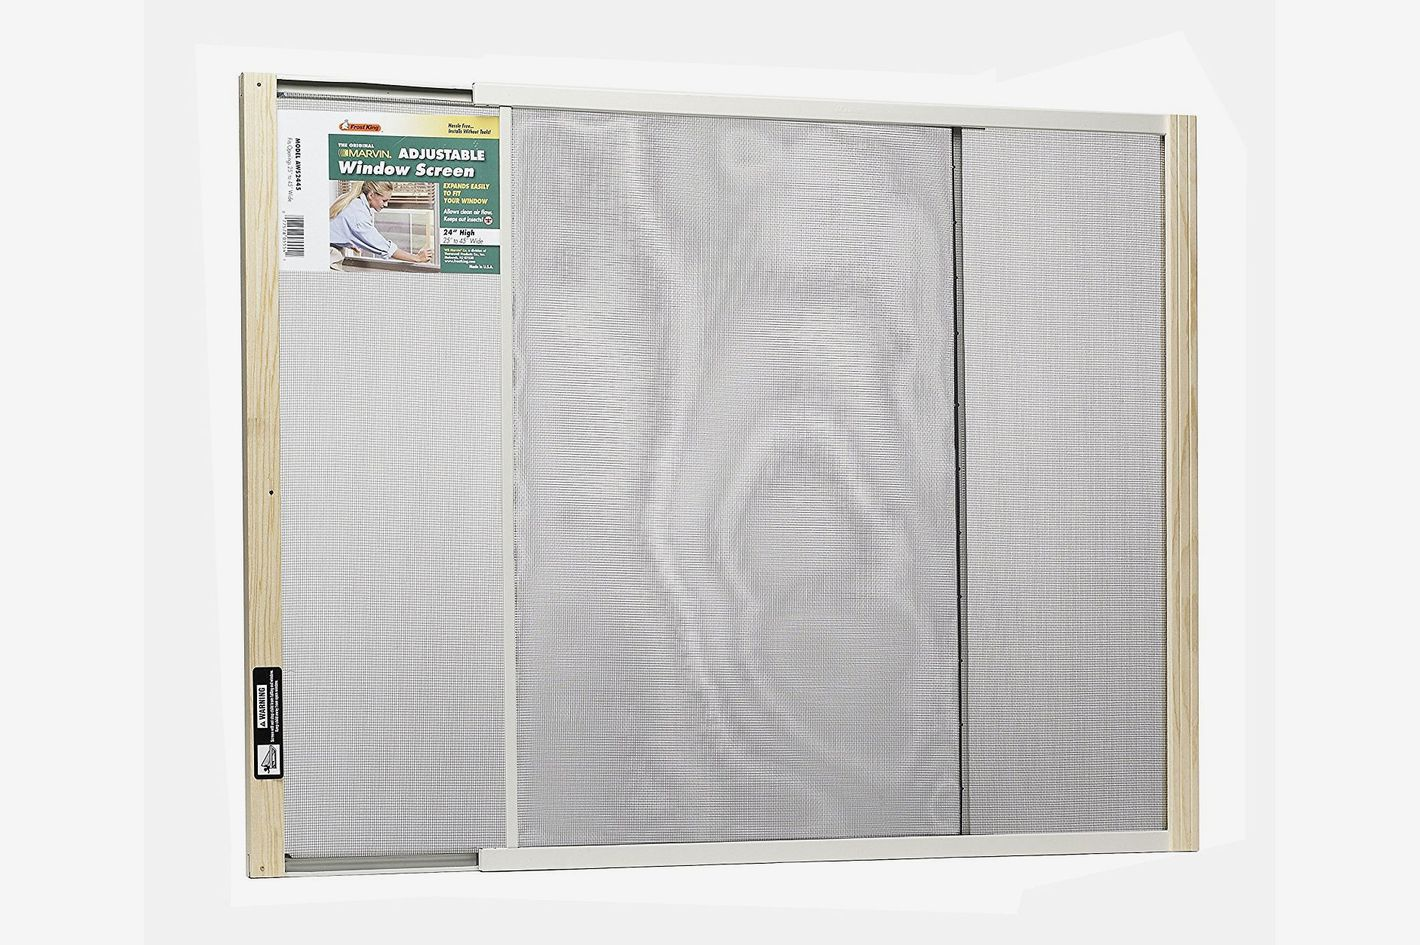 Frost King Adjustable Window Screen